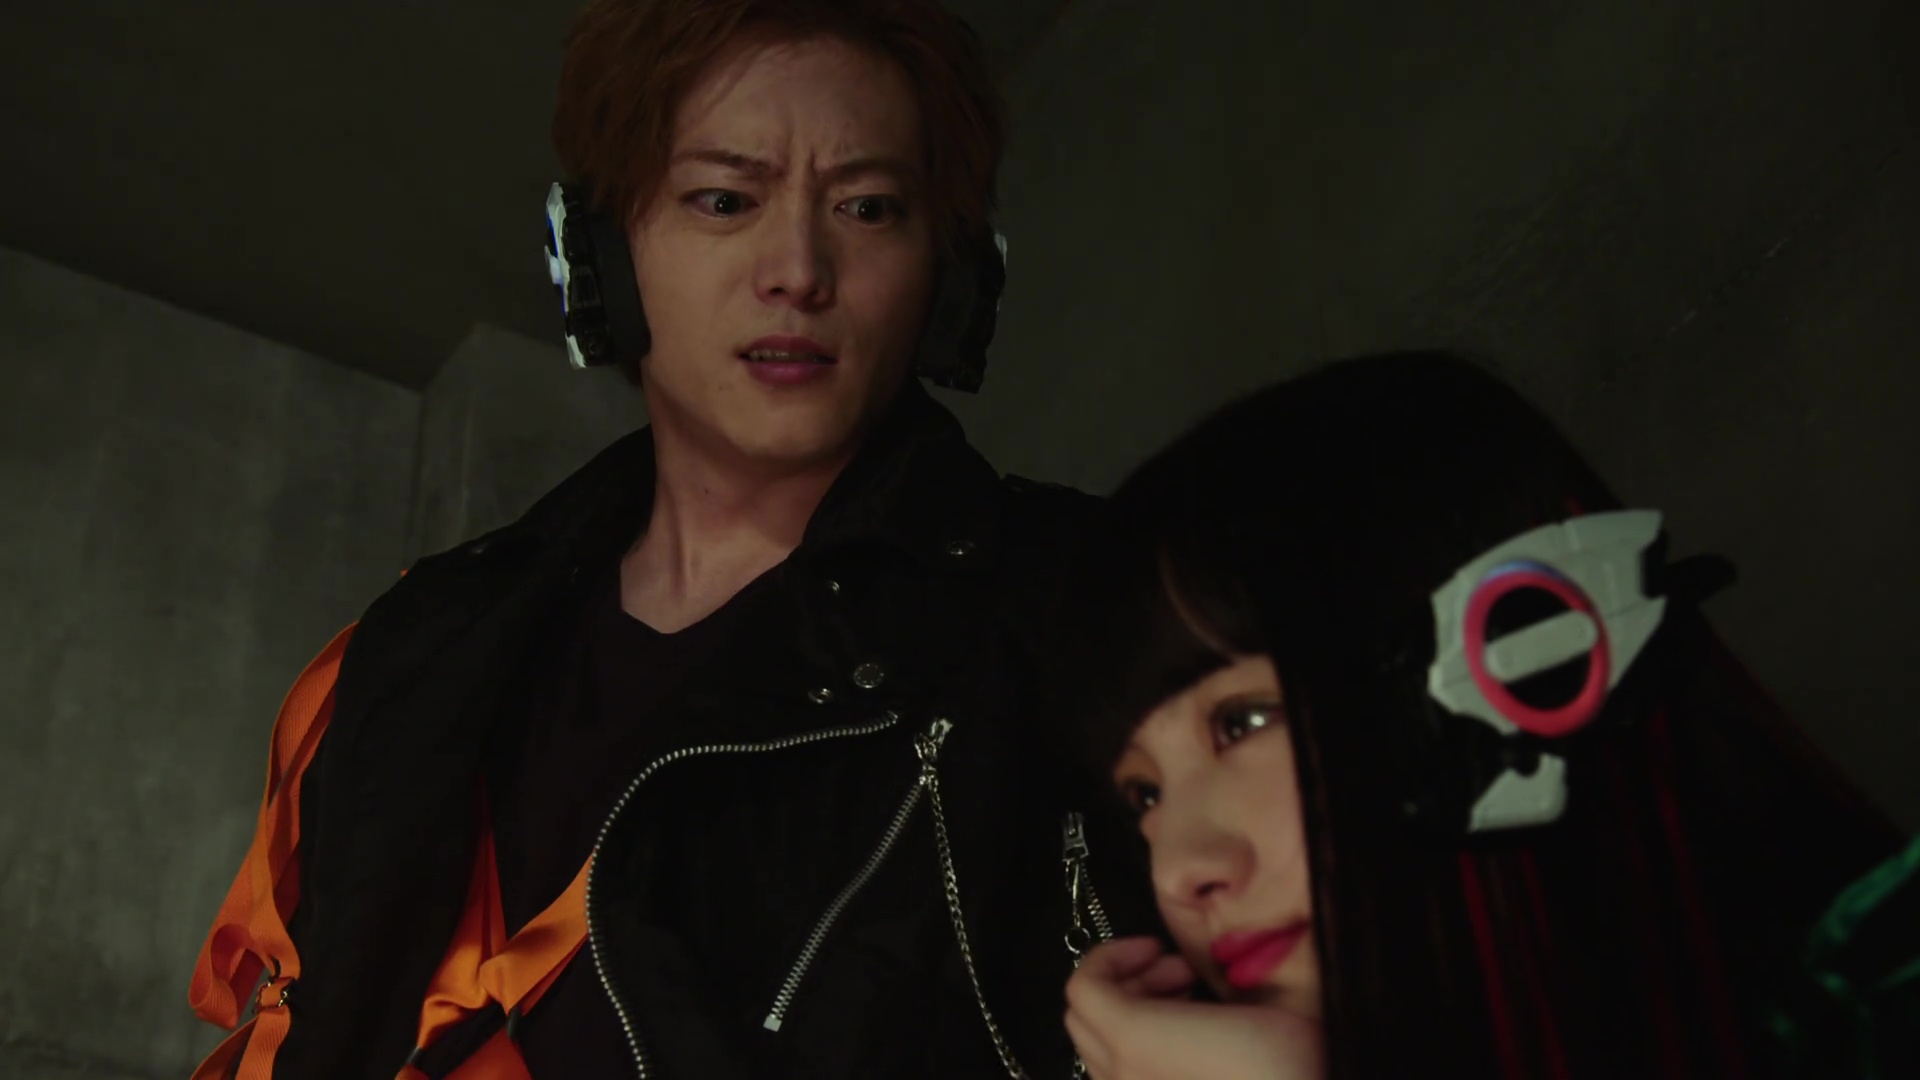 Kamen Rider Zero One Episode 35.5 Recap